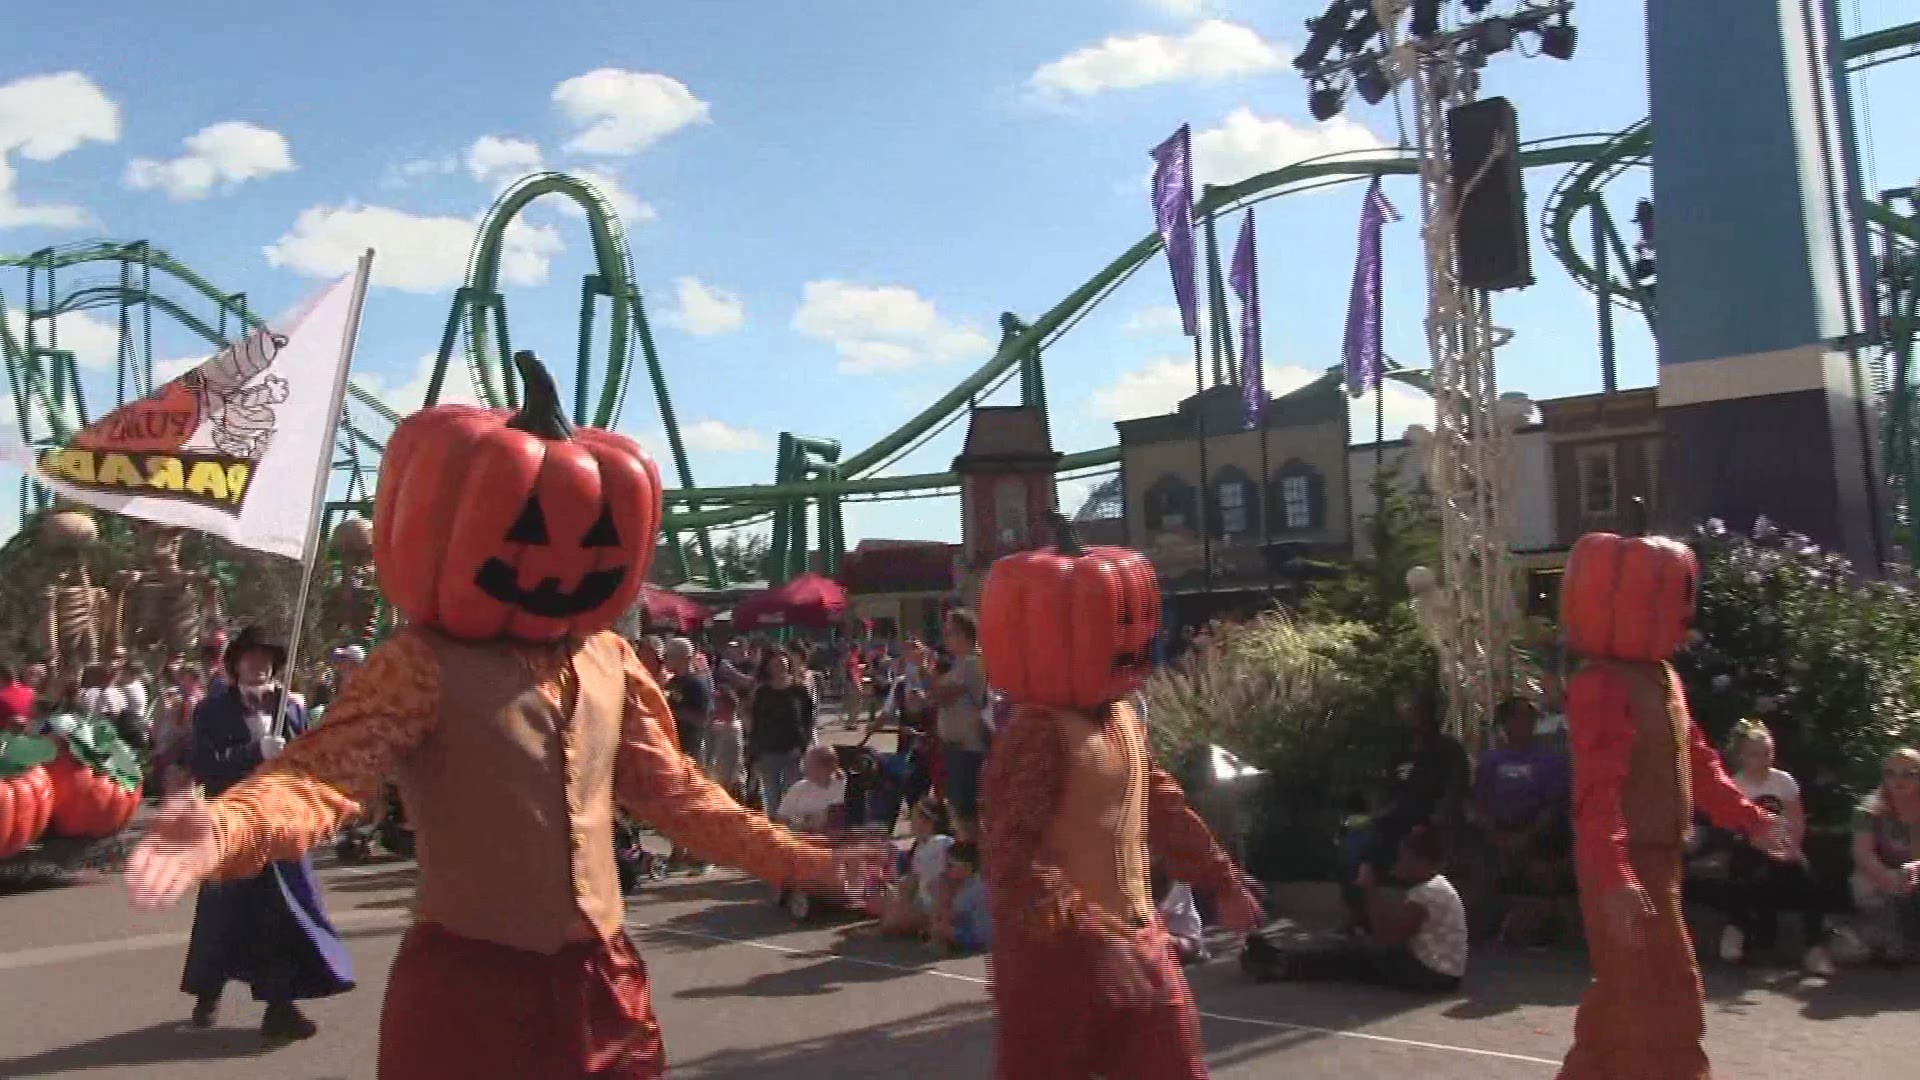 Halloween Events Spokane Wa 2020 Will Cedar Point have HalloWeekends this year? Event canceled